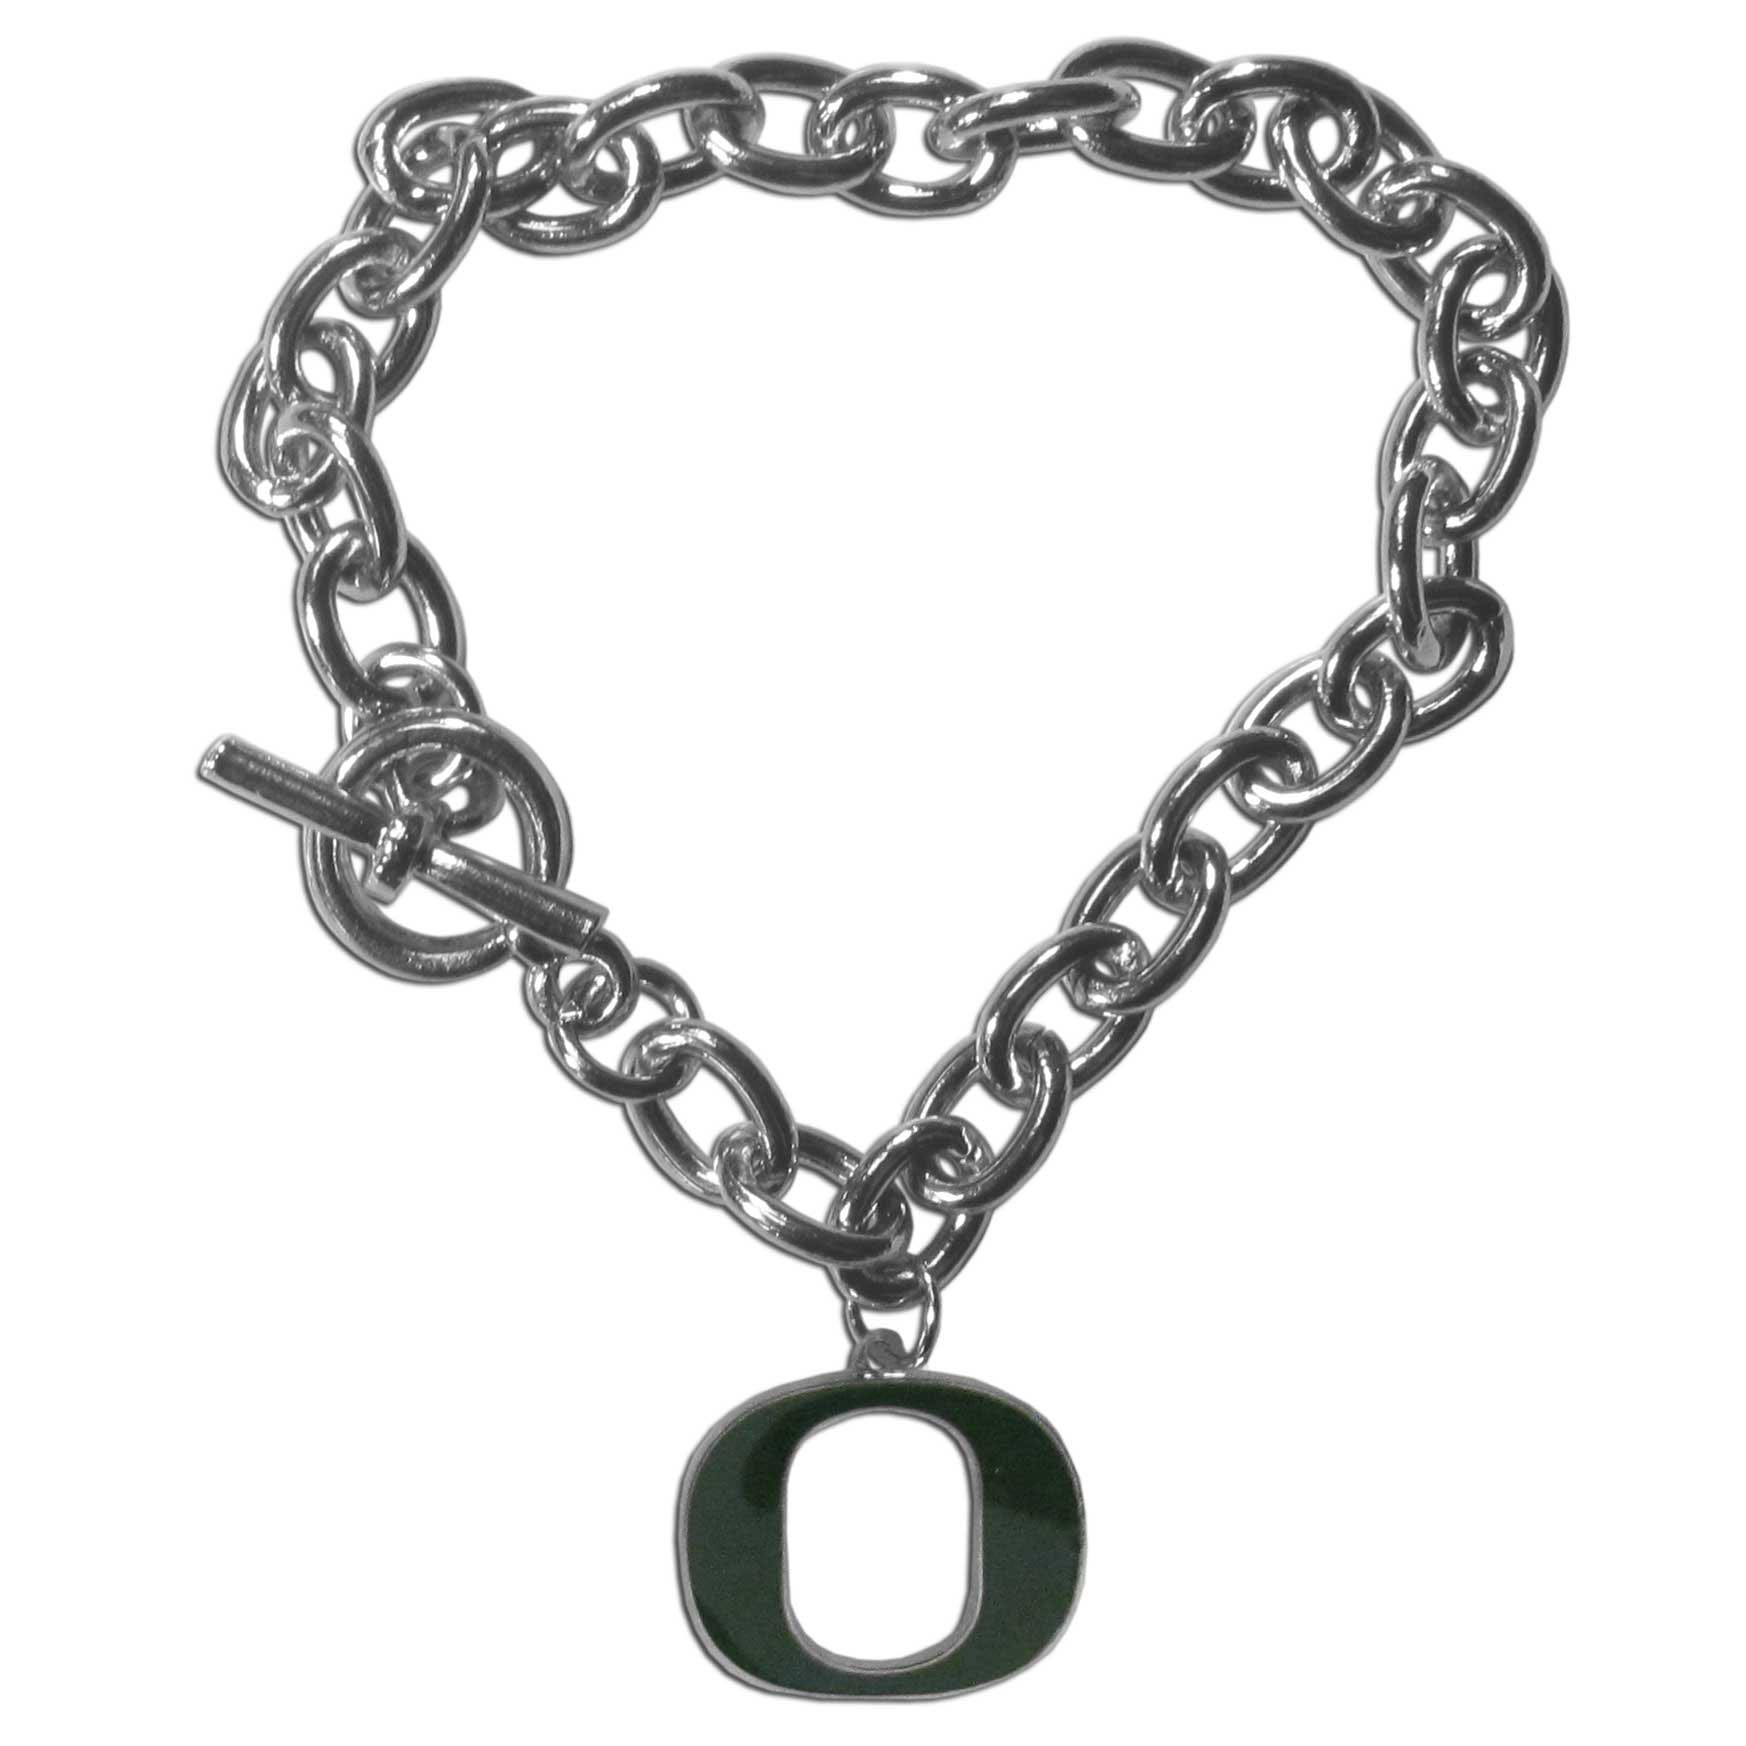 Oregon Ducks Charm Chain Bracelet - Our classic single charm bracelet is a great way to show off your team pride! The 7.5 inch large link chain features a high polish Oregon Ducks charm and features a toggle clasp which makes it super easy to take on and off.